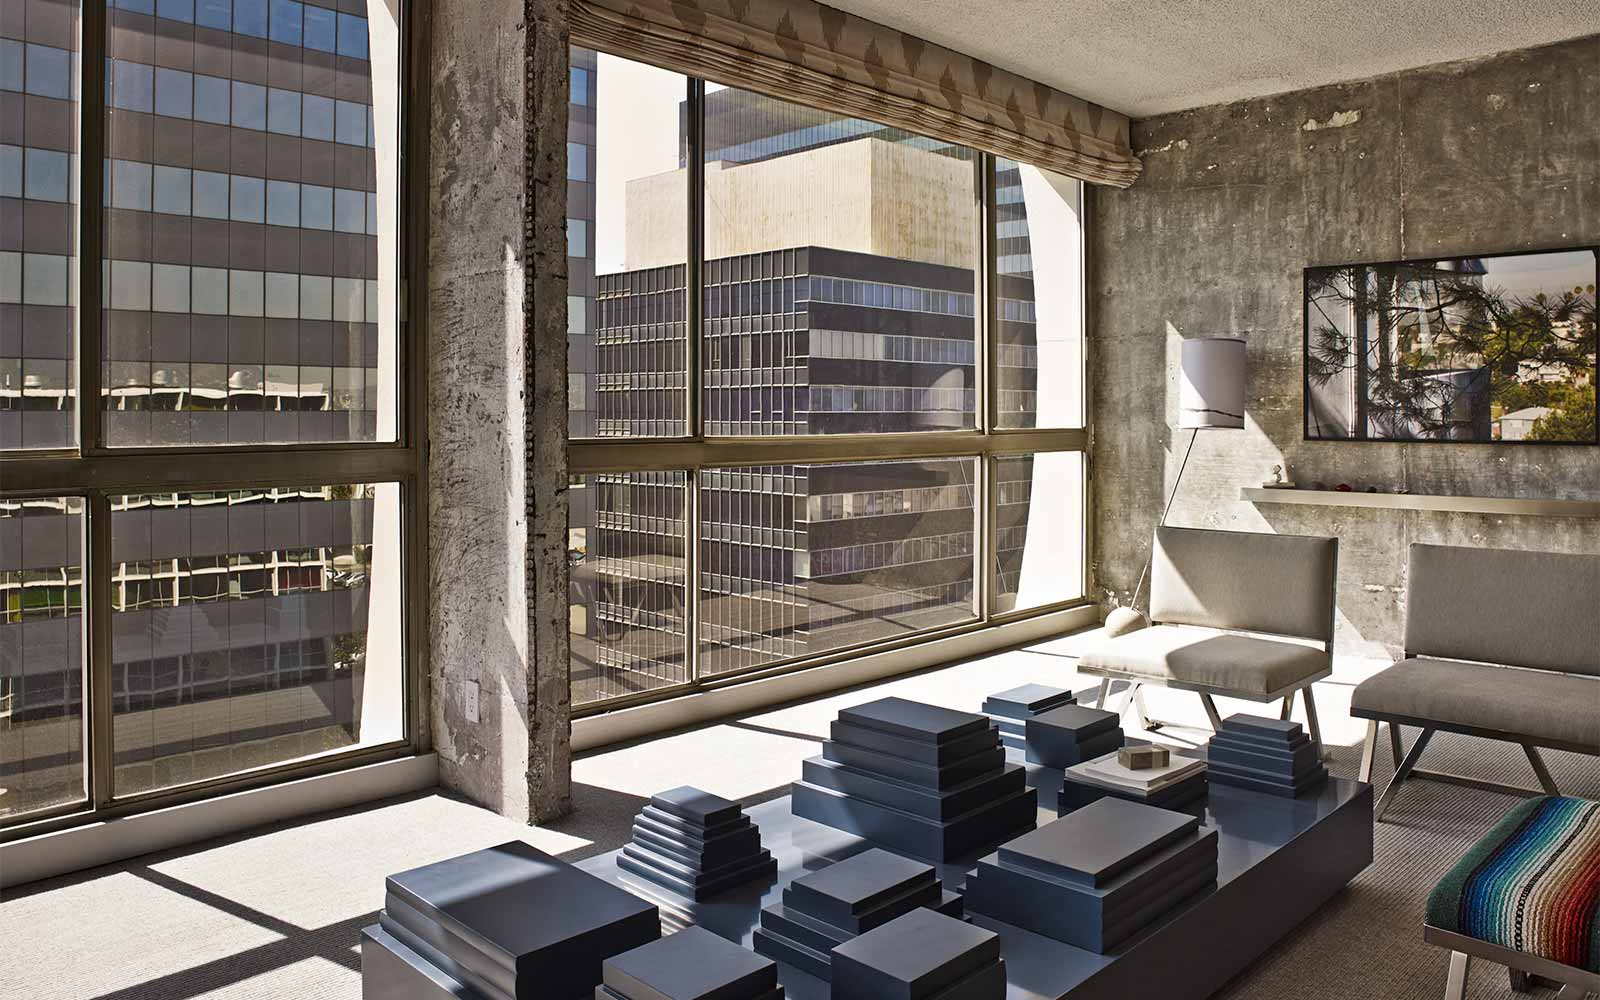 The Line Hotel - Room / Knibb Design (8)